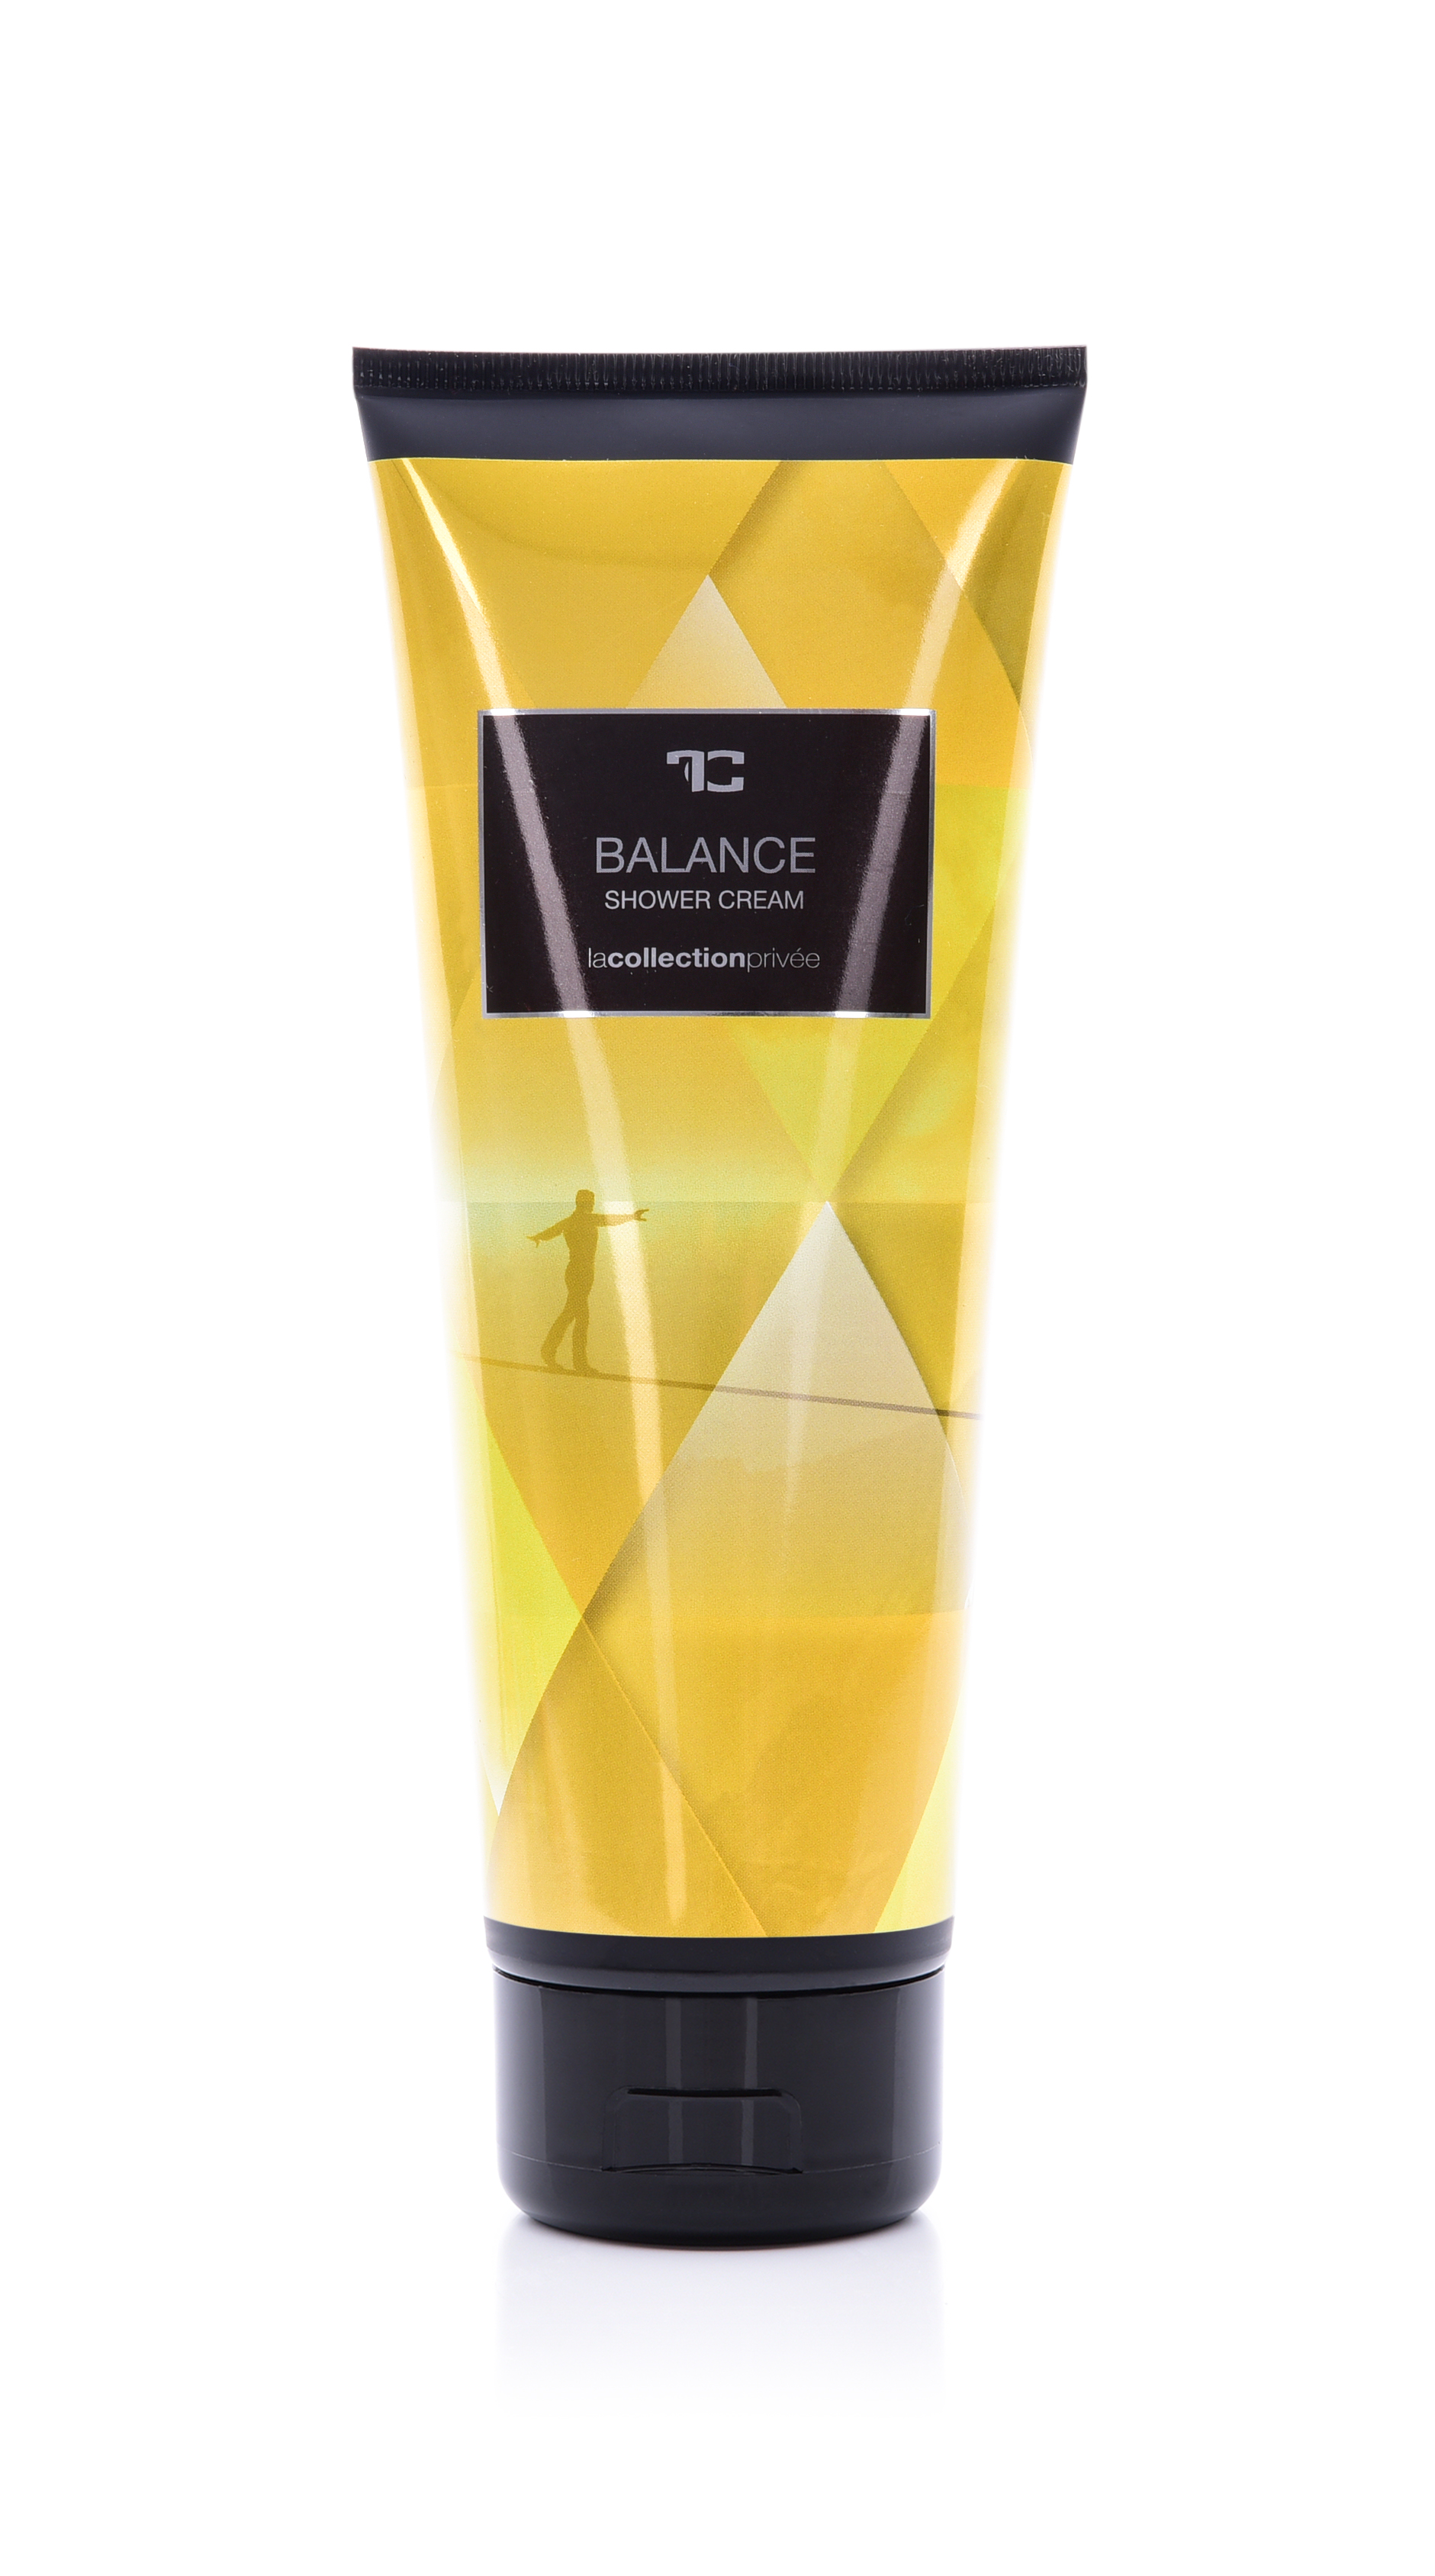 SHOWER CREAM 200 ml balance  LA COLLECTION PRIVÉE